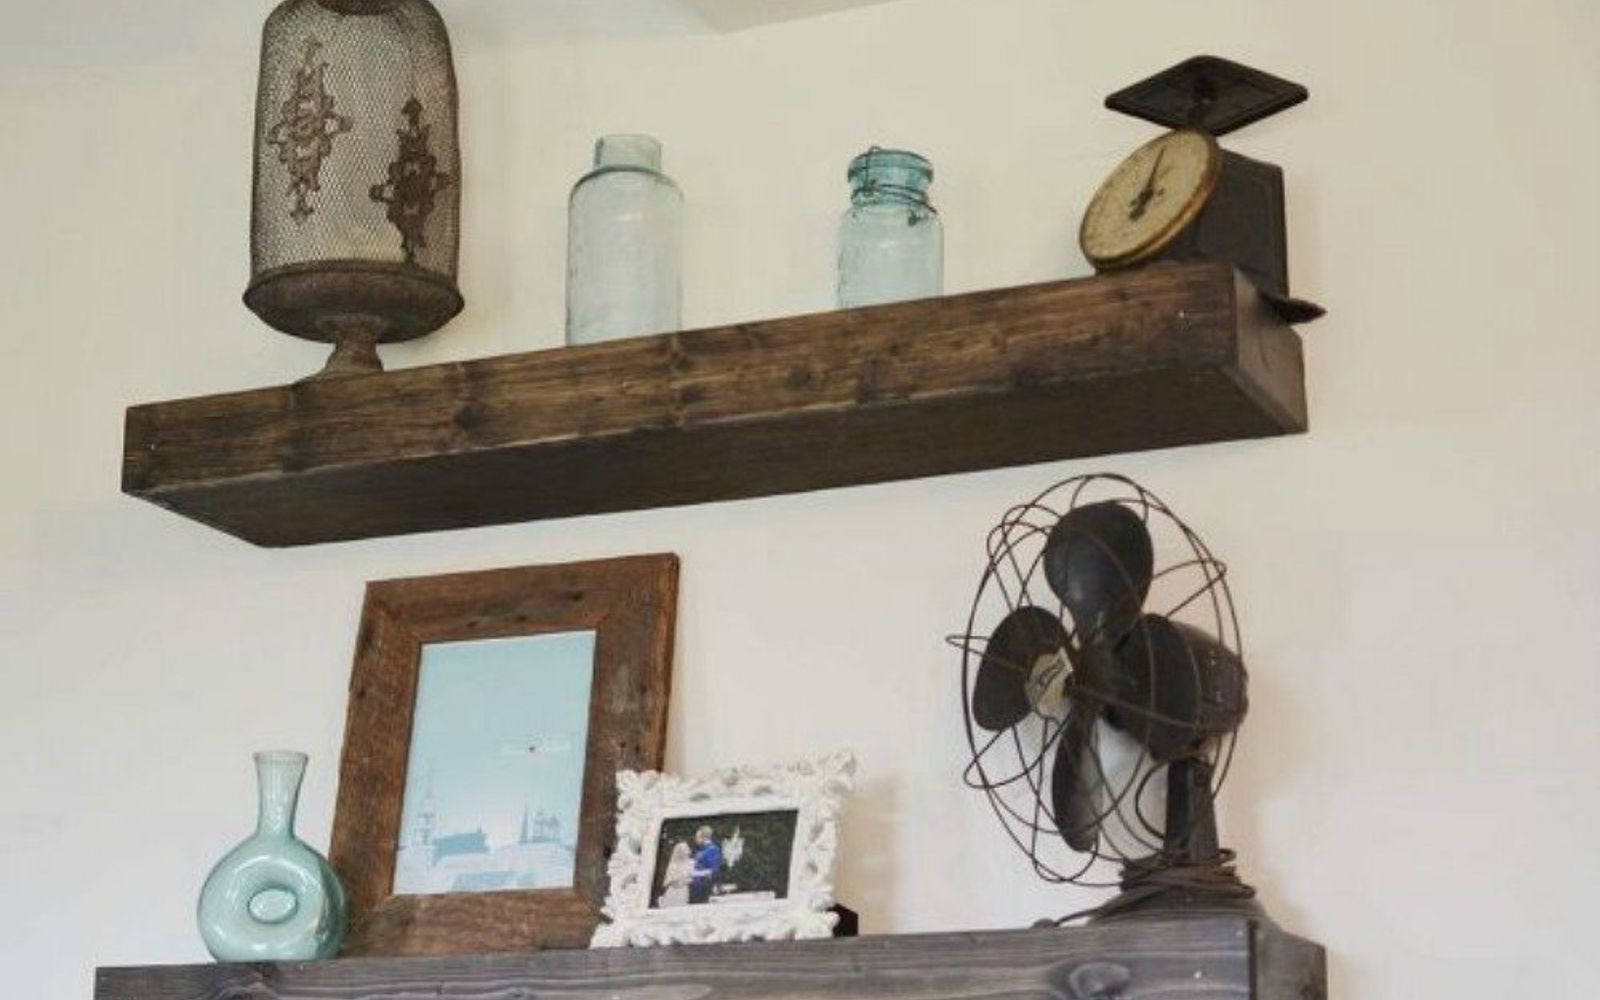 s 13 low budget ways to decorate your living room walls, go green, plumbing, Install some wood floating shelves